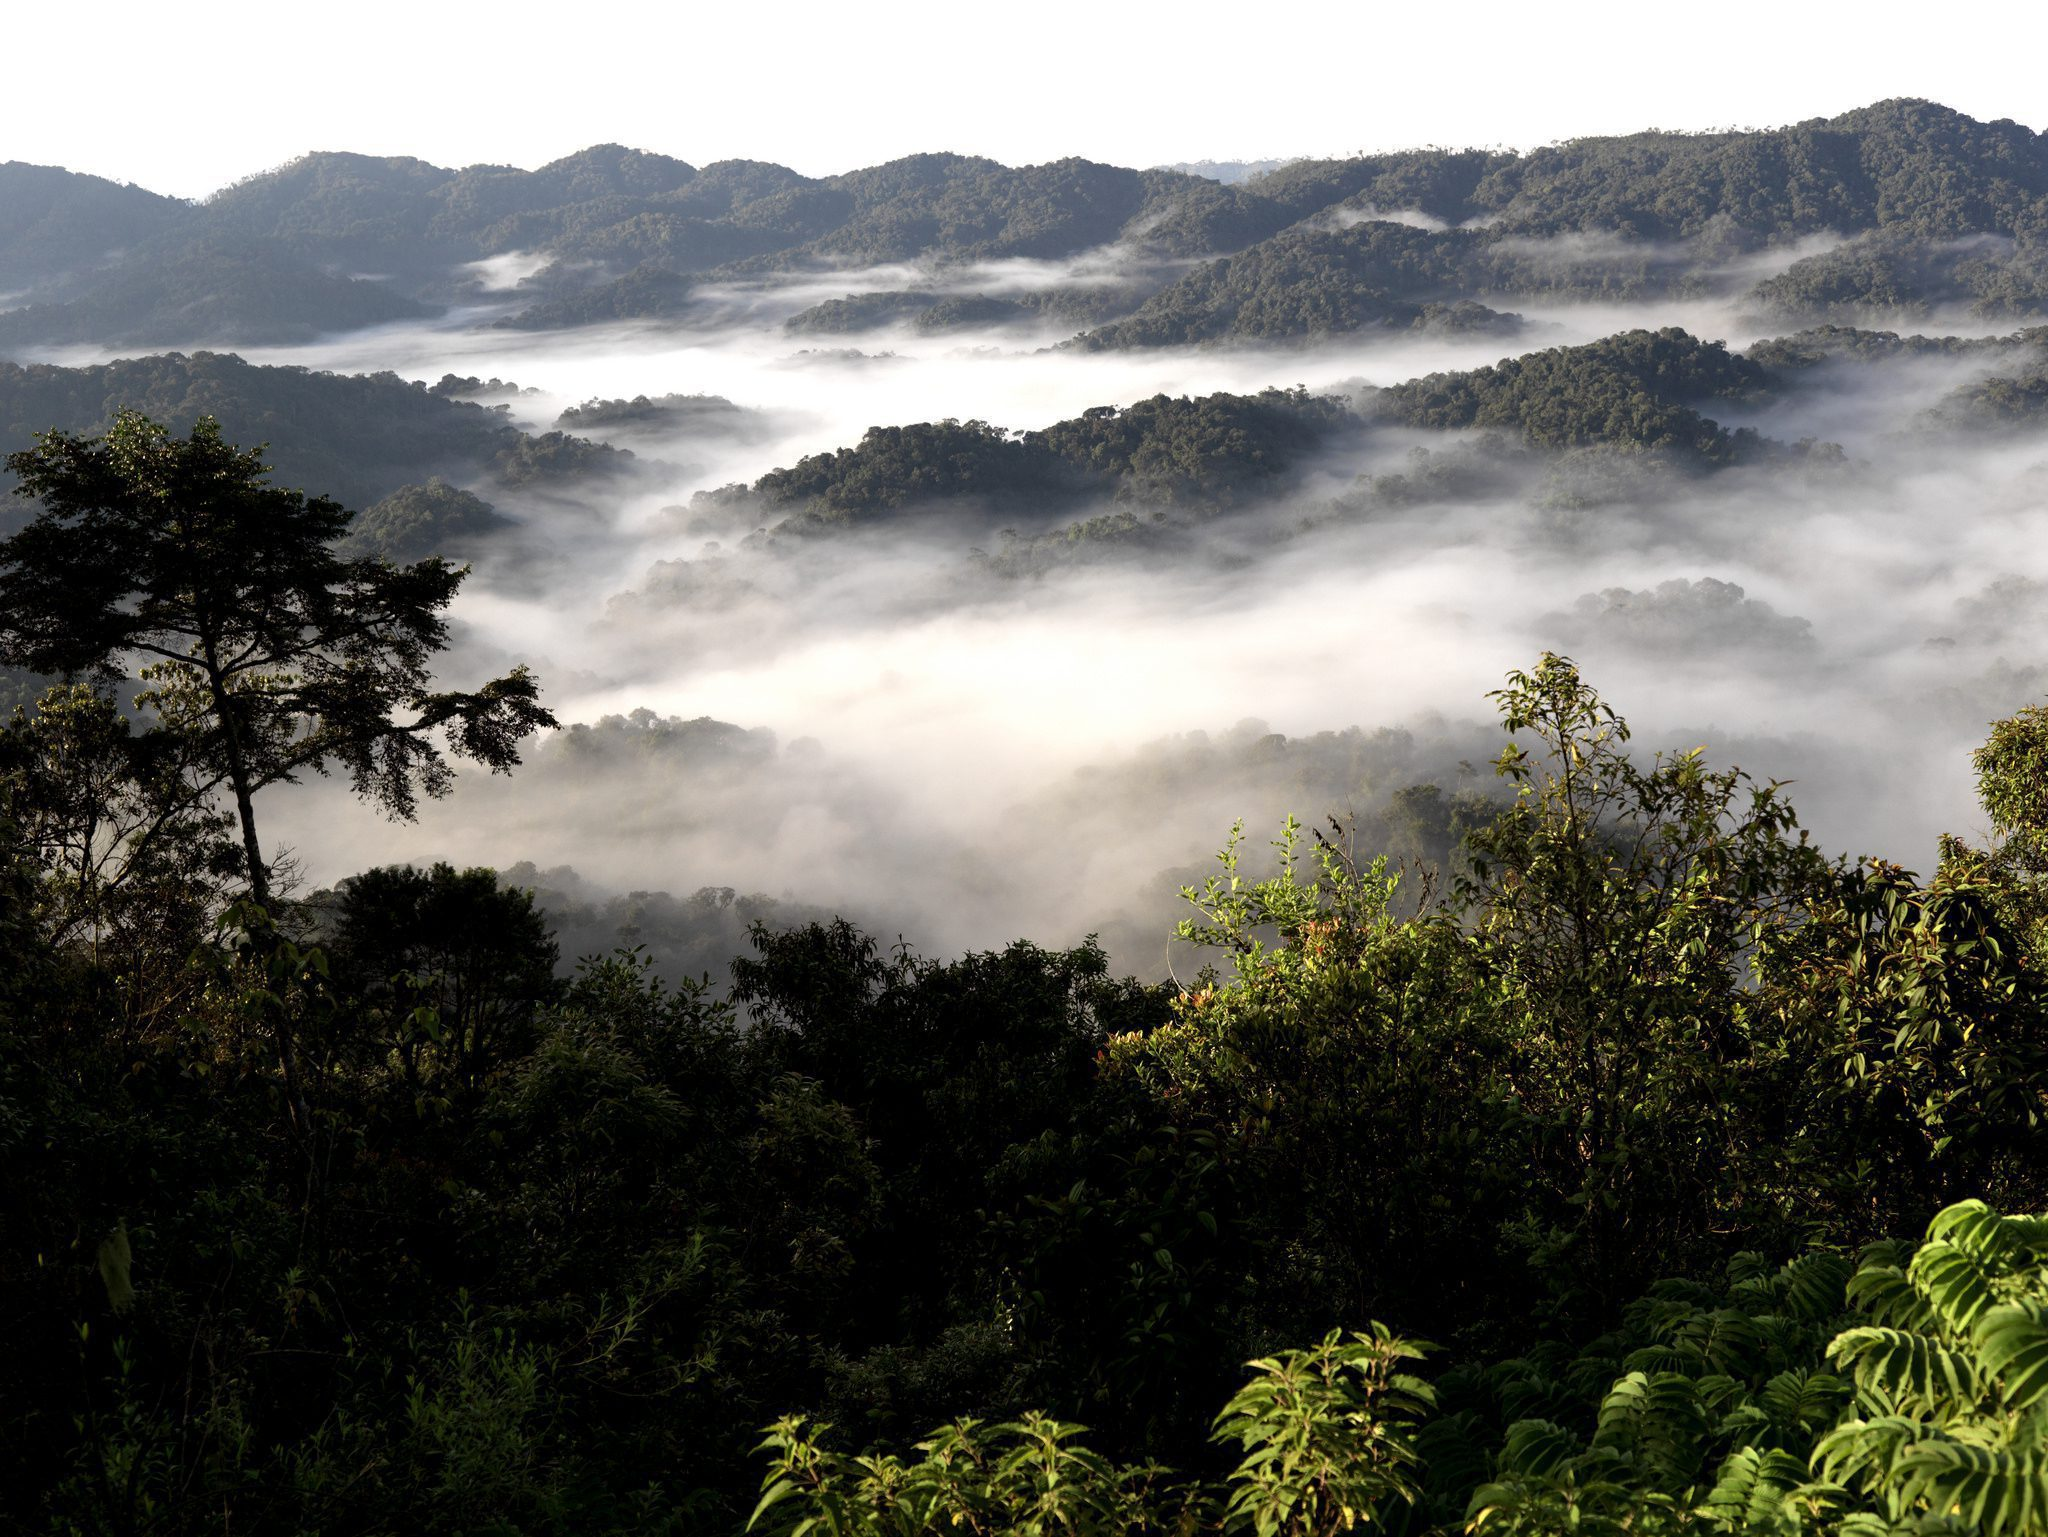 Nyungwe landscape with mist over trees seen on Rwanda safari